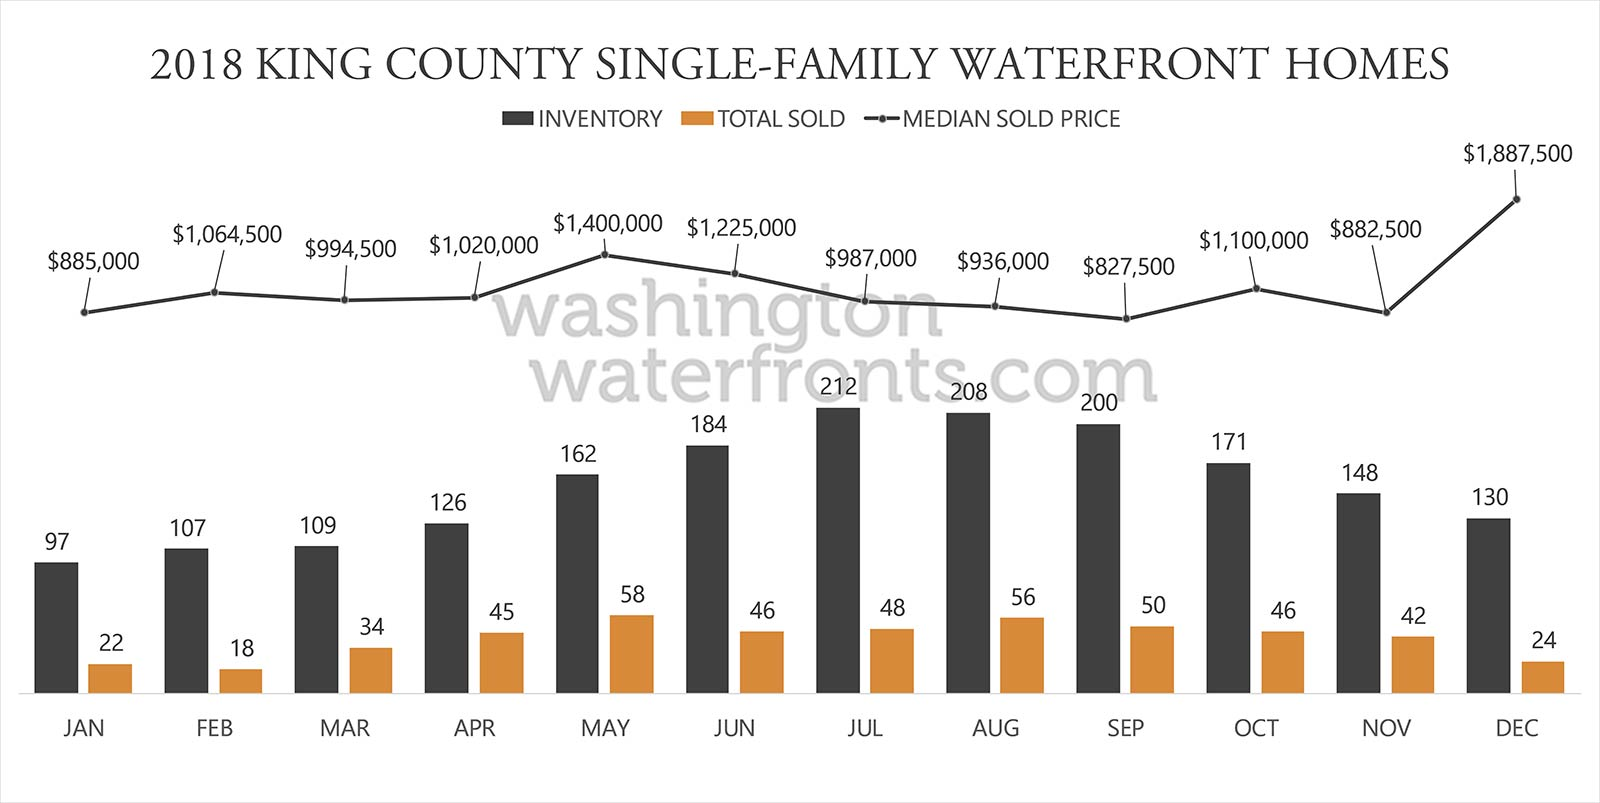 King County Waterfront Inventory